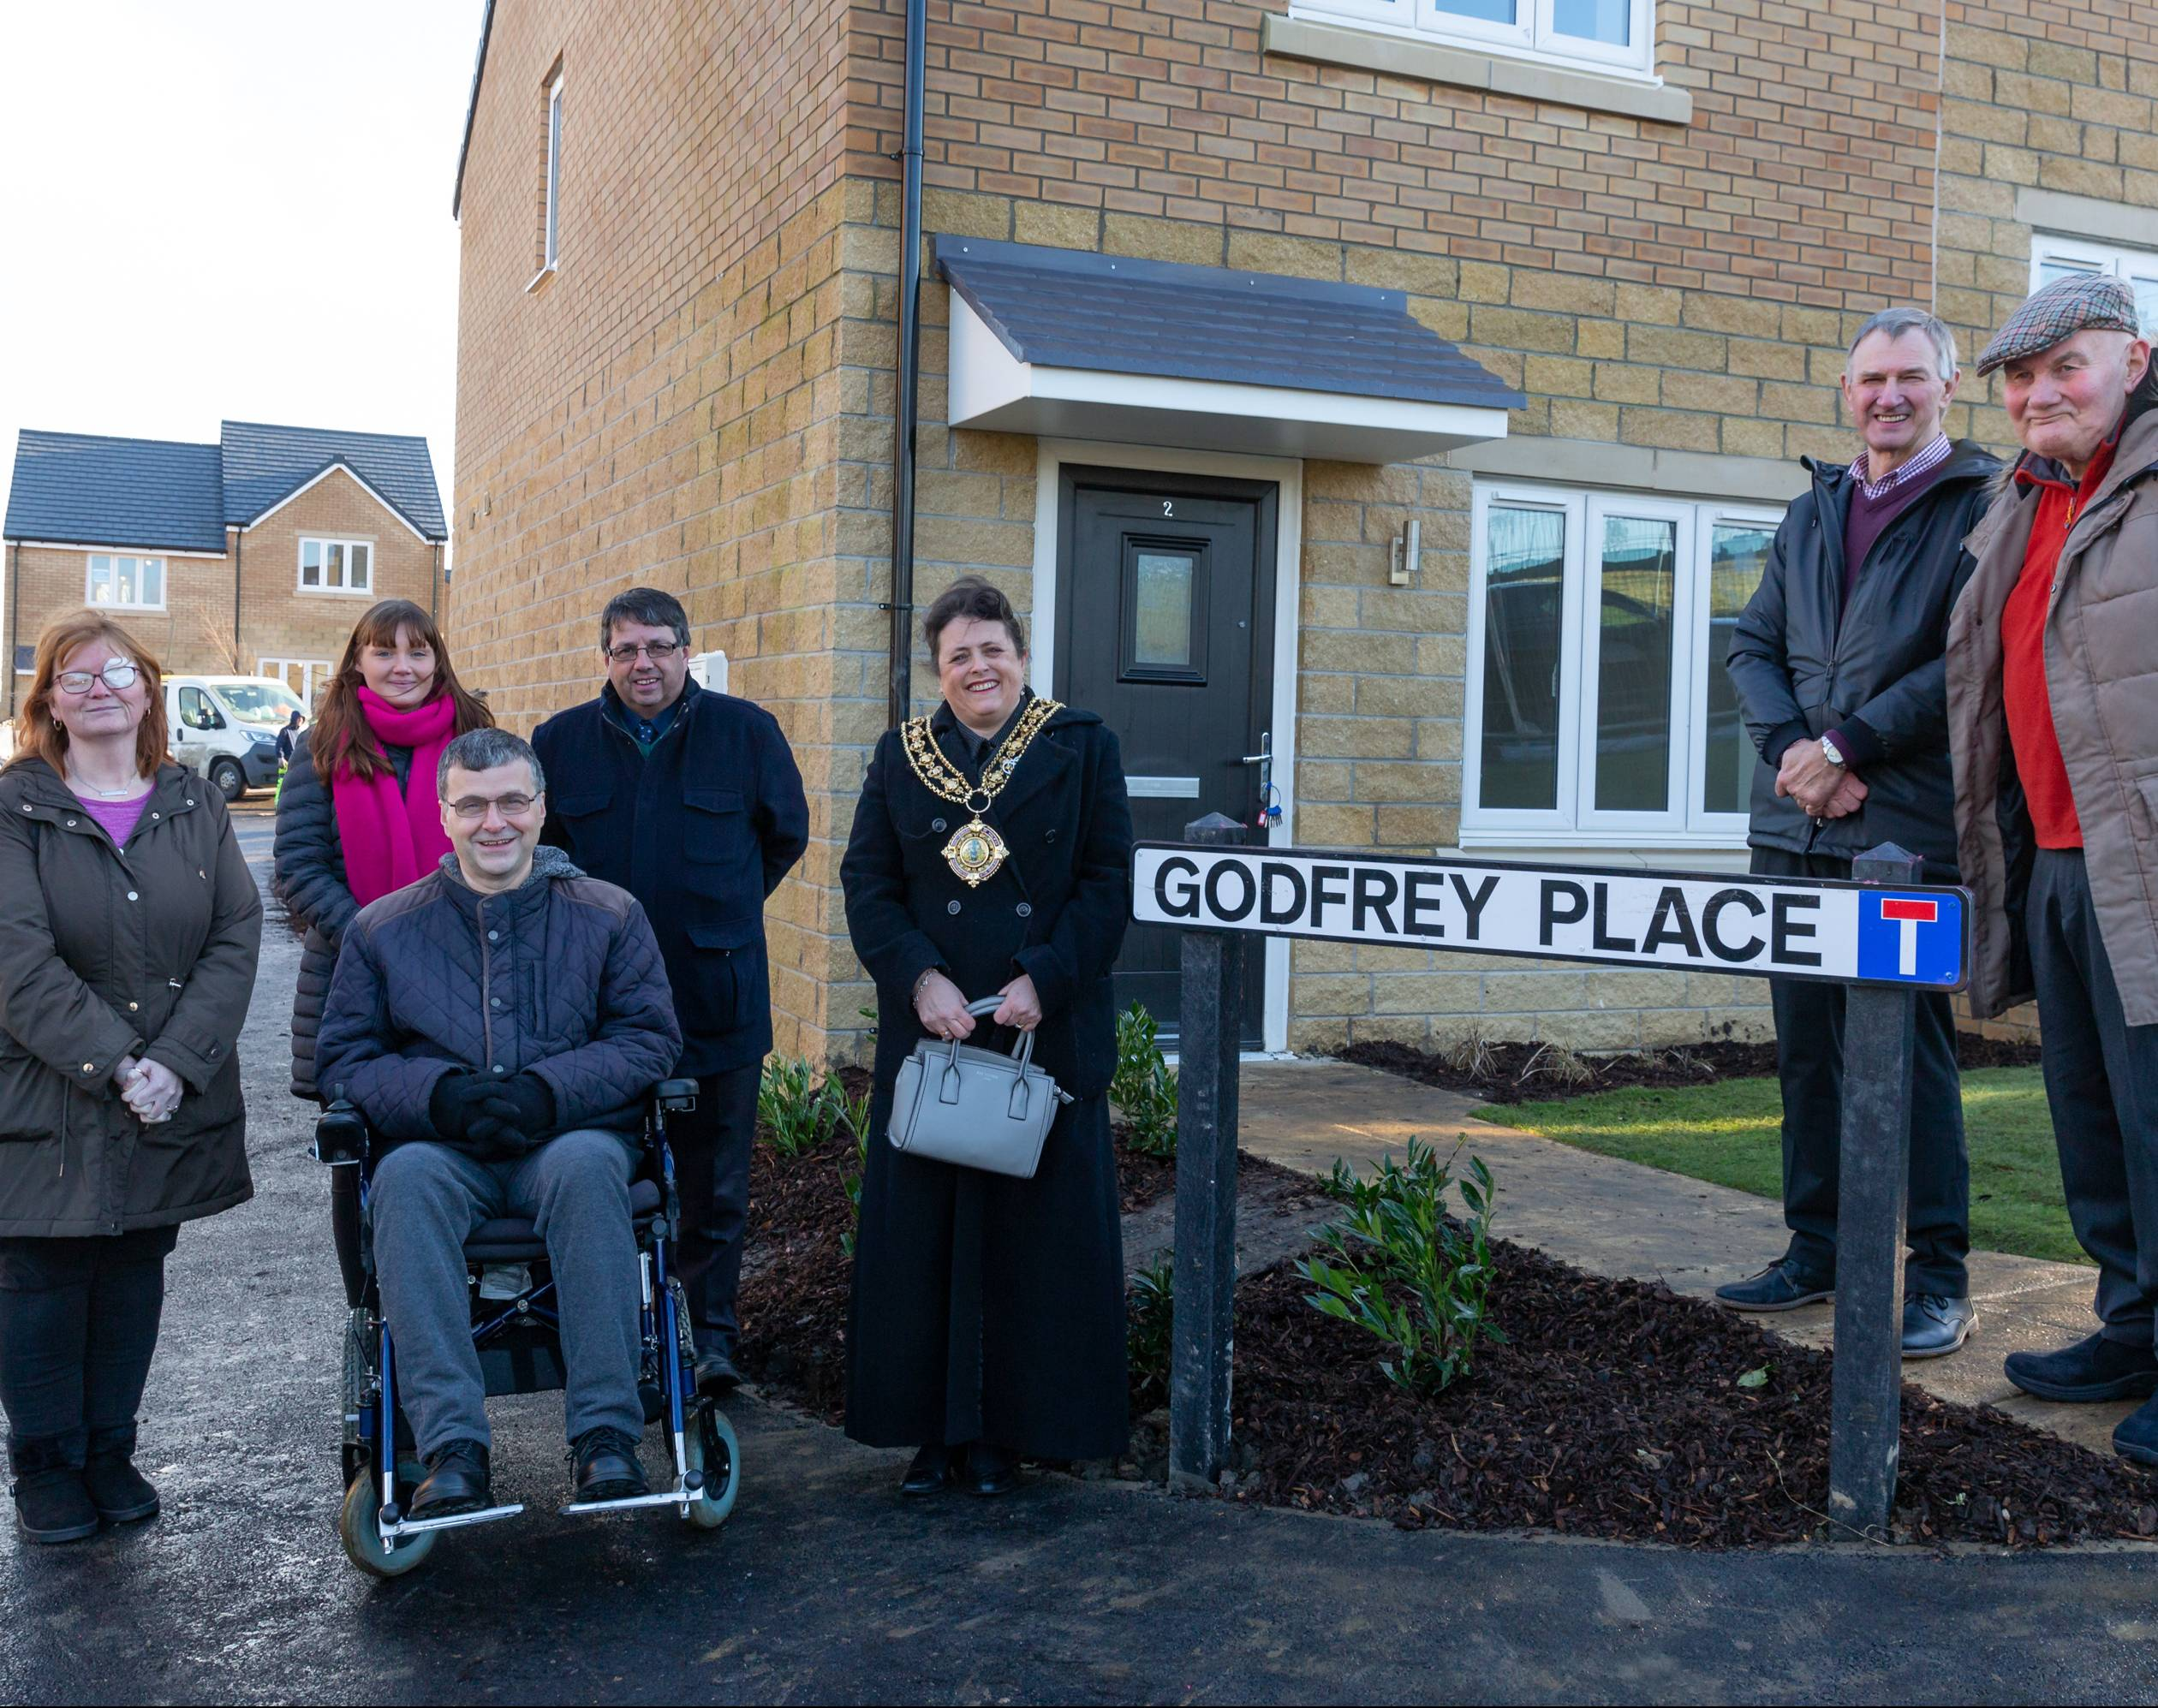 The official opening of Godfrey Place